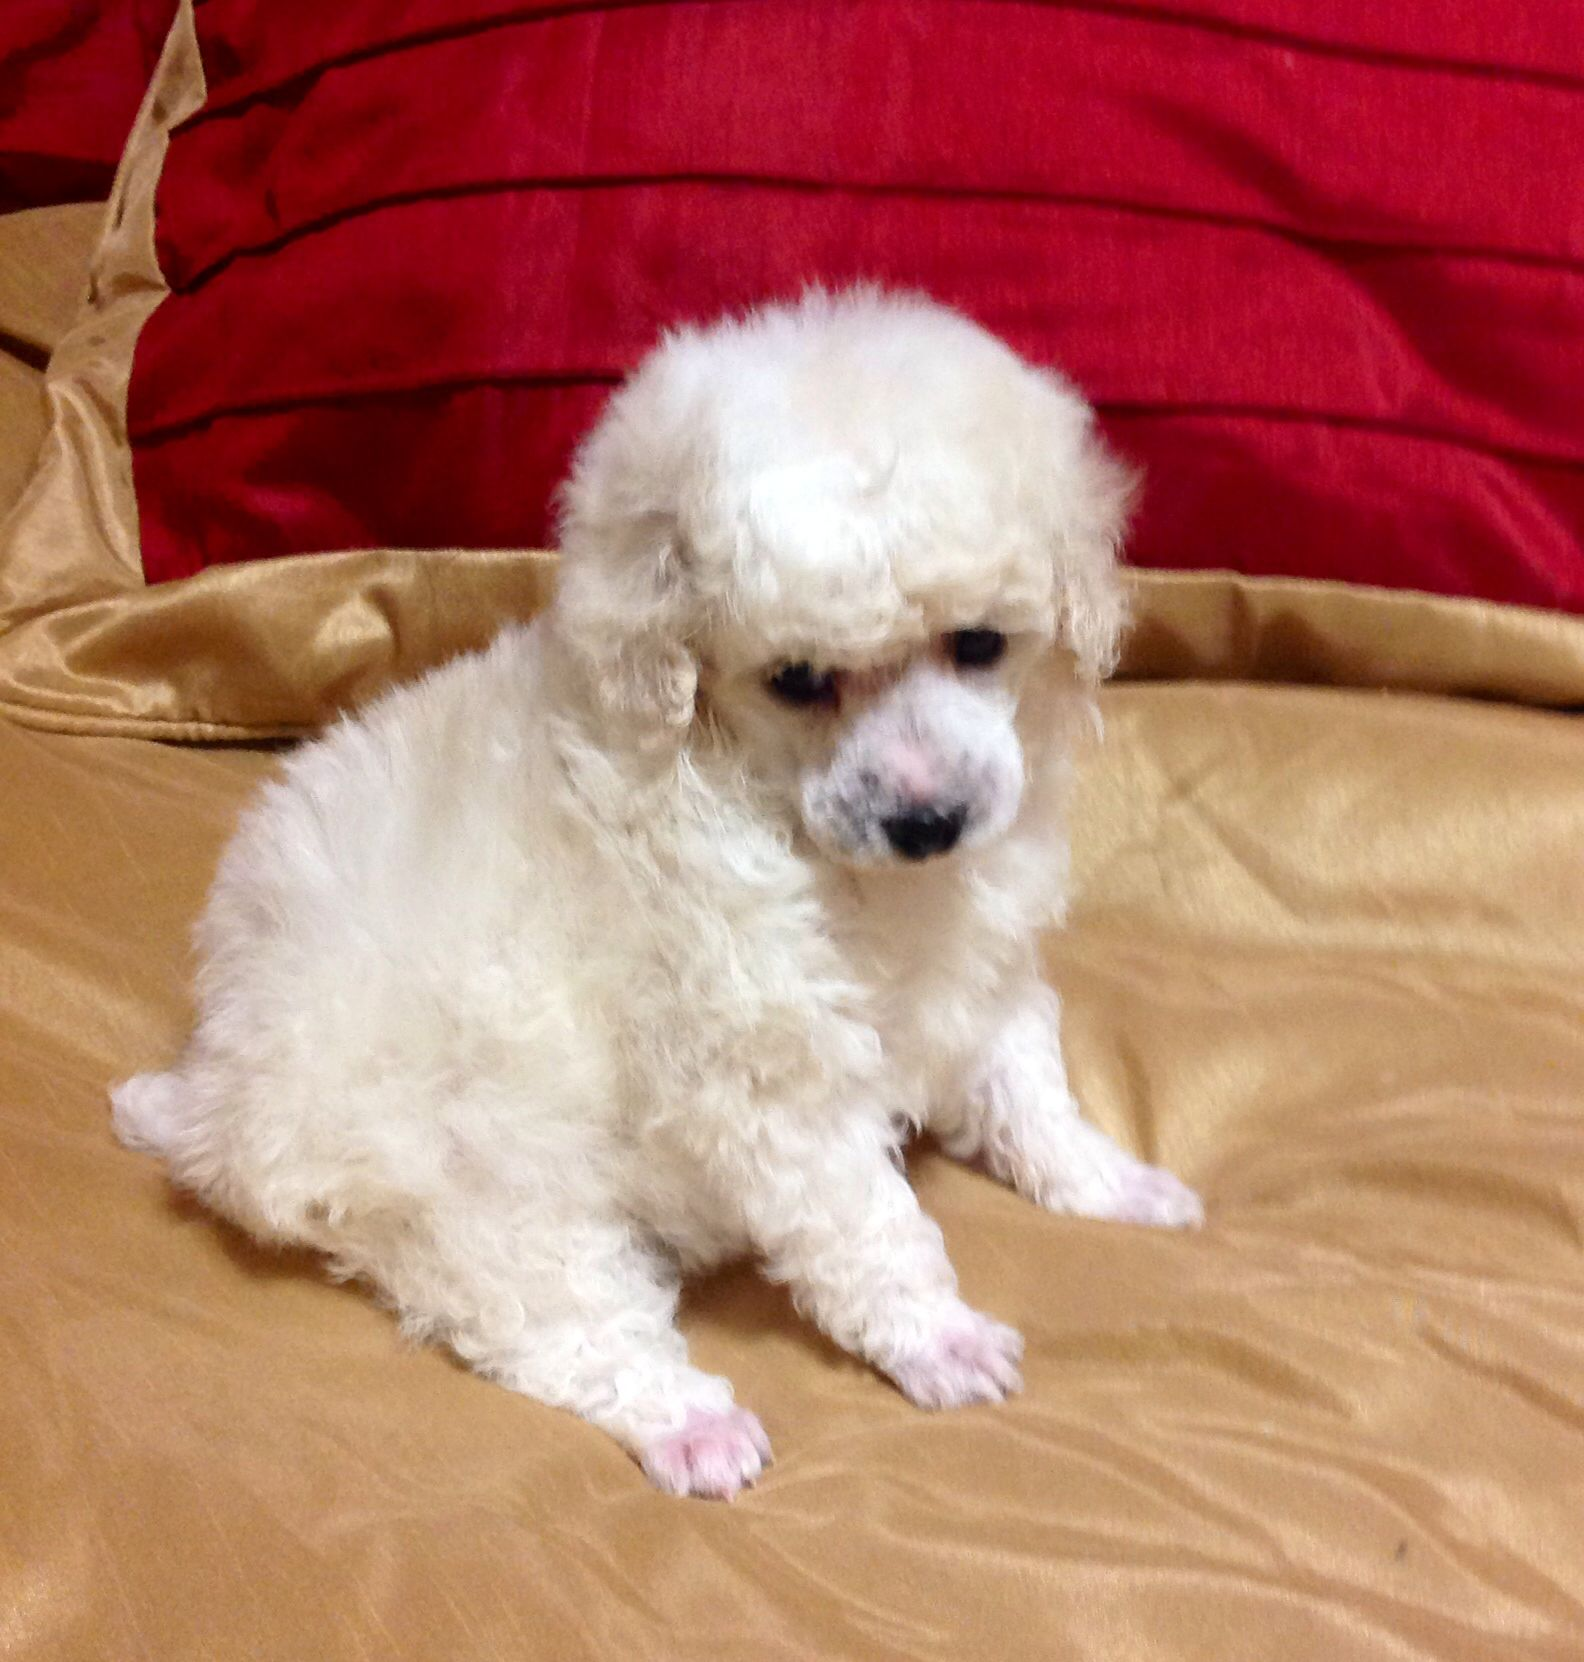 Akc Ice White Toy Poodle Puppy Poodle Puppy Toy Poodle Puppy